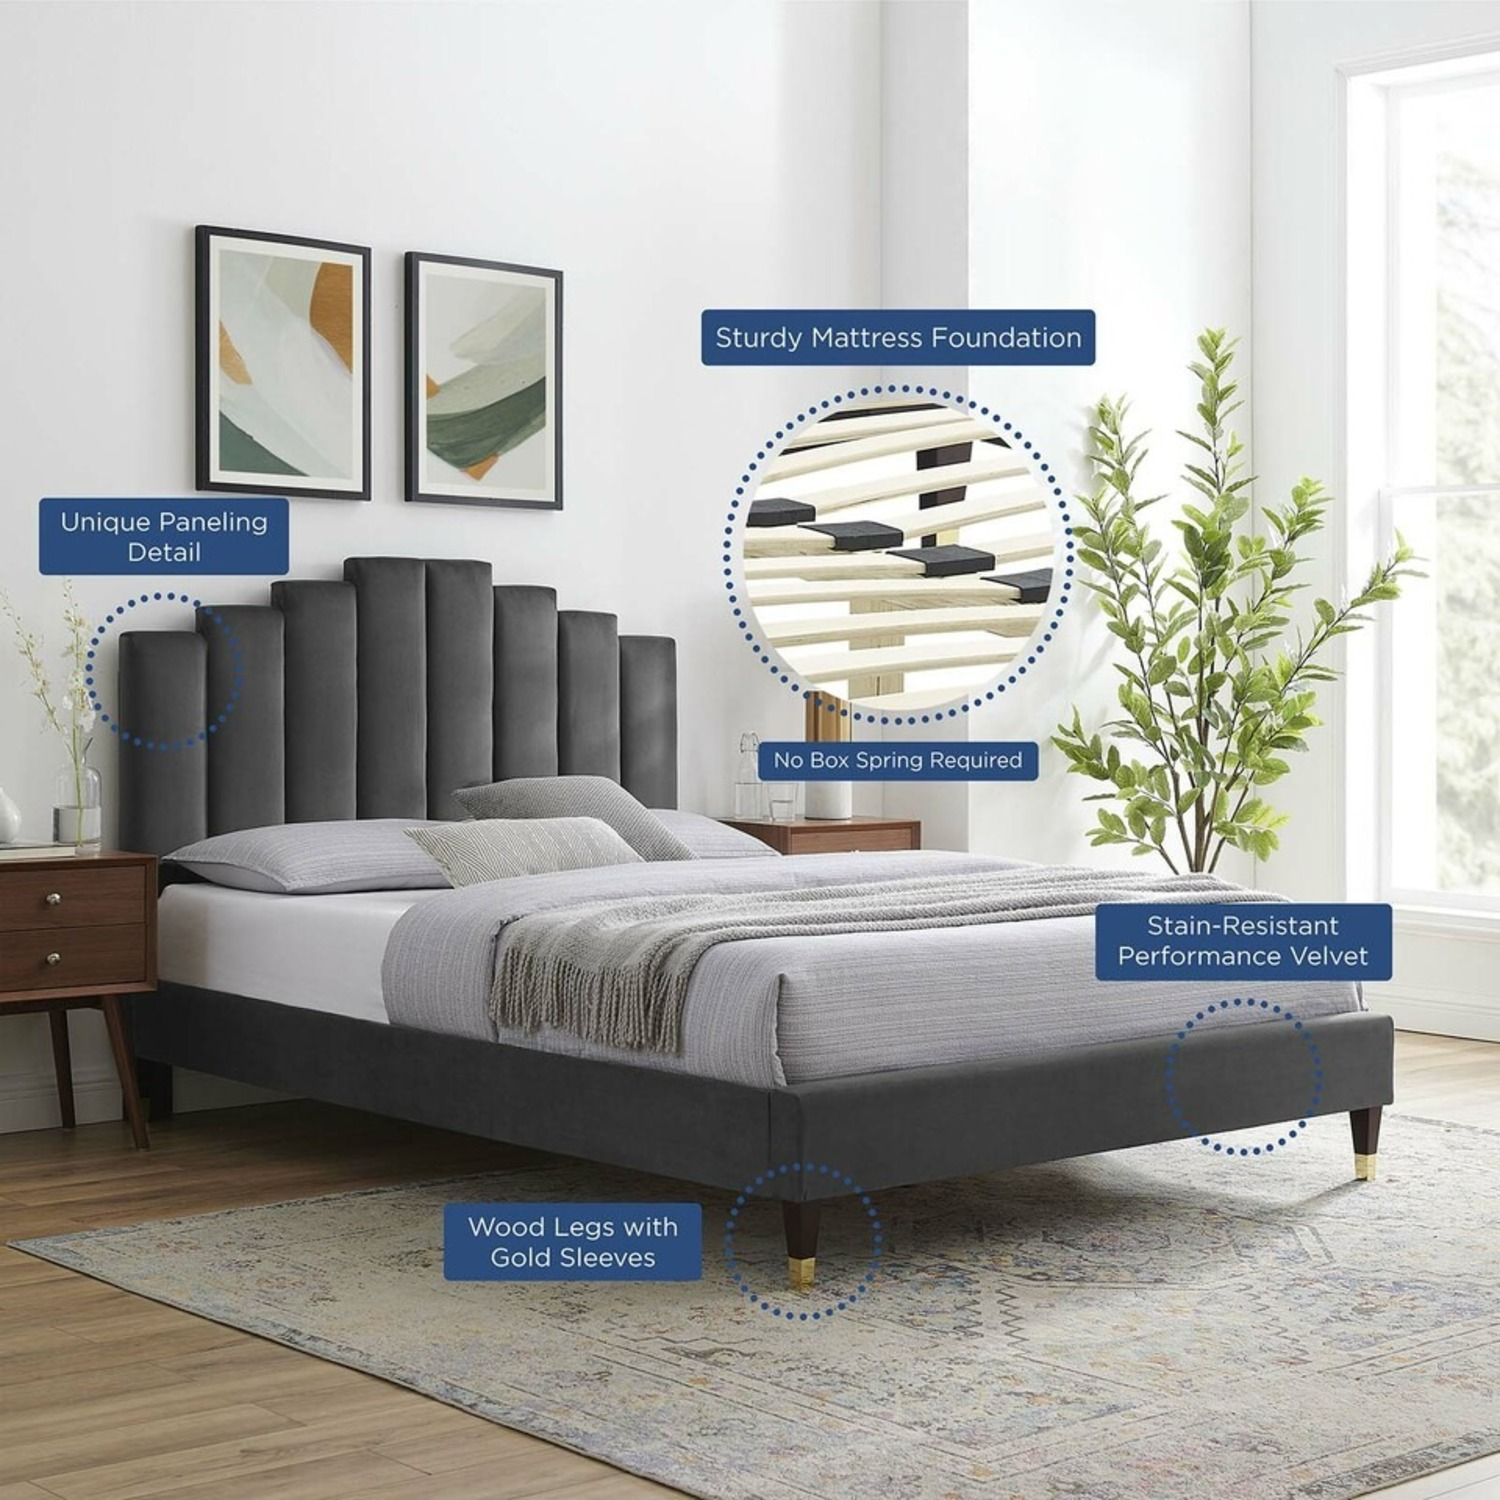 Twin Bed In Charcoal Fabric W/ Dense Foam Padding - image-11